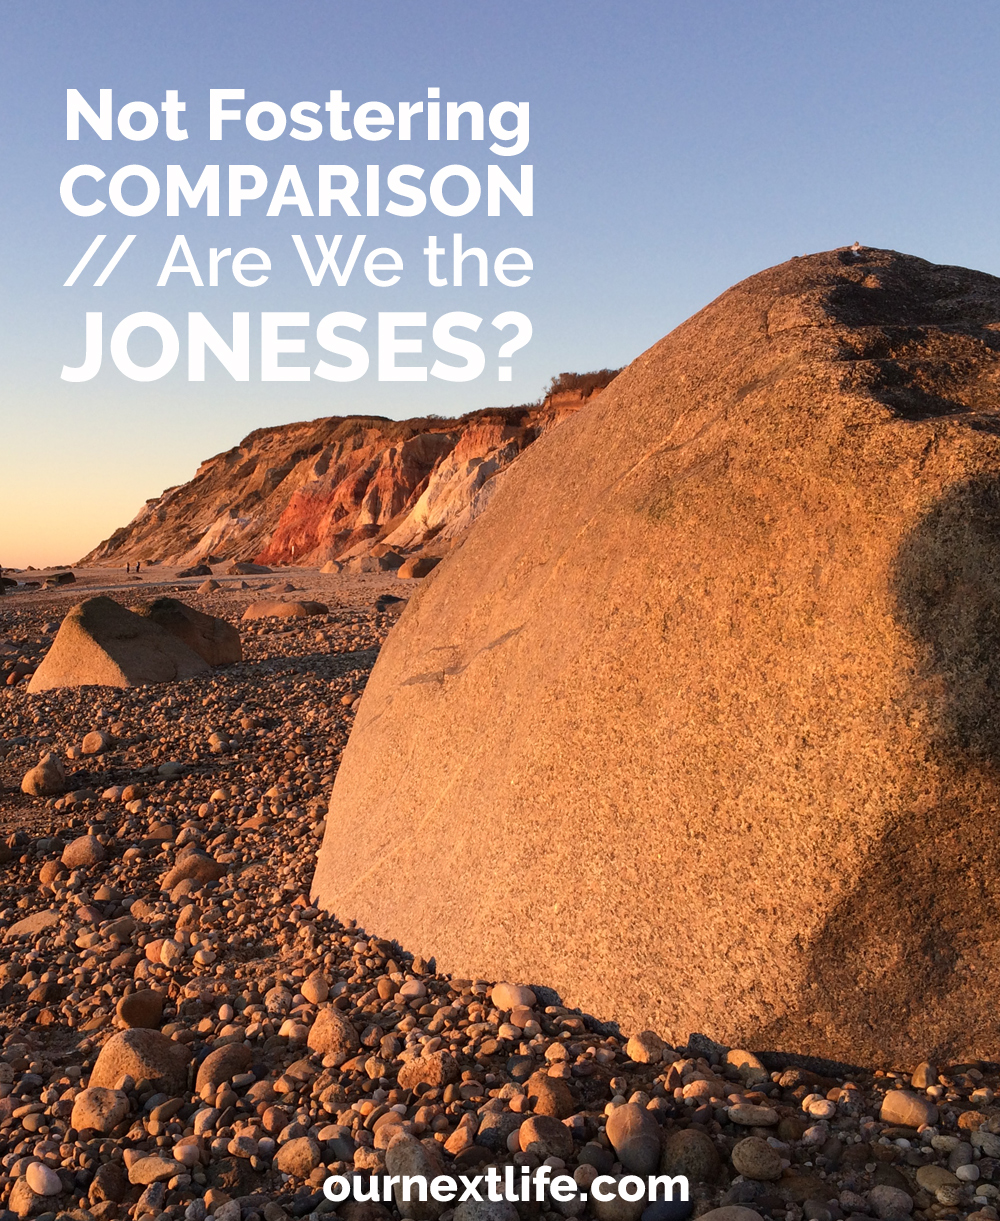 OurNextLife.com // Not Fostering Comparison // Are We the Joneses?